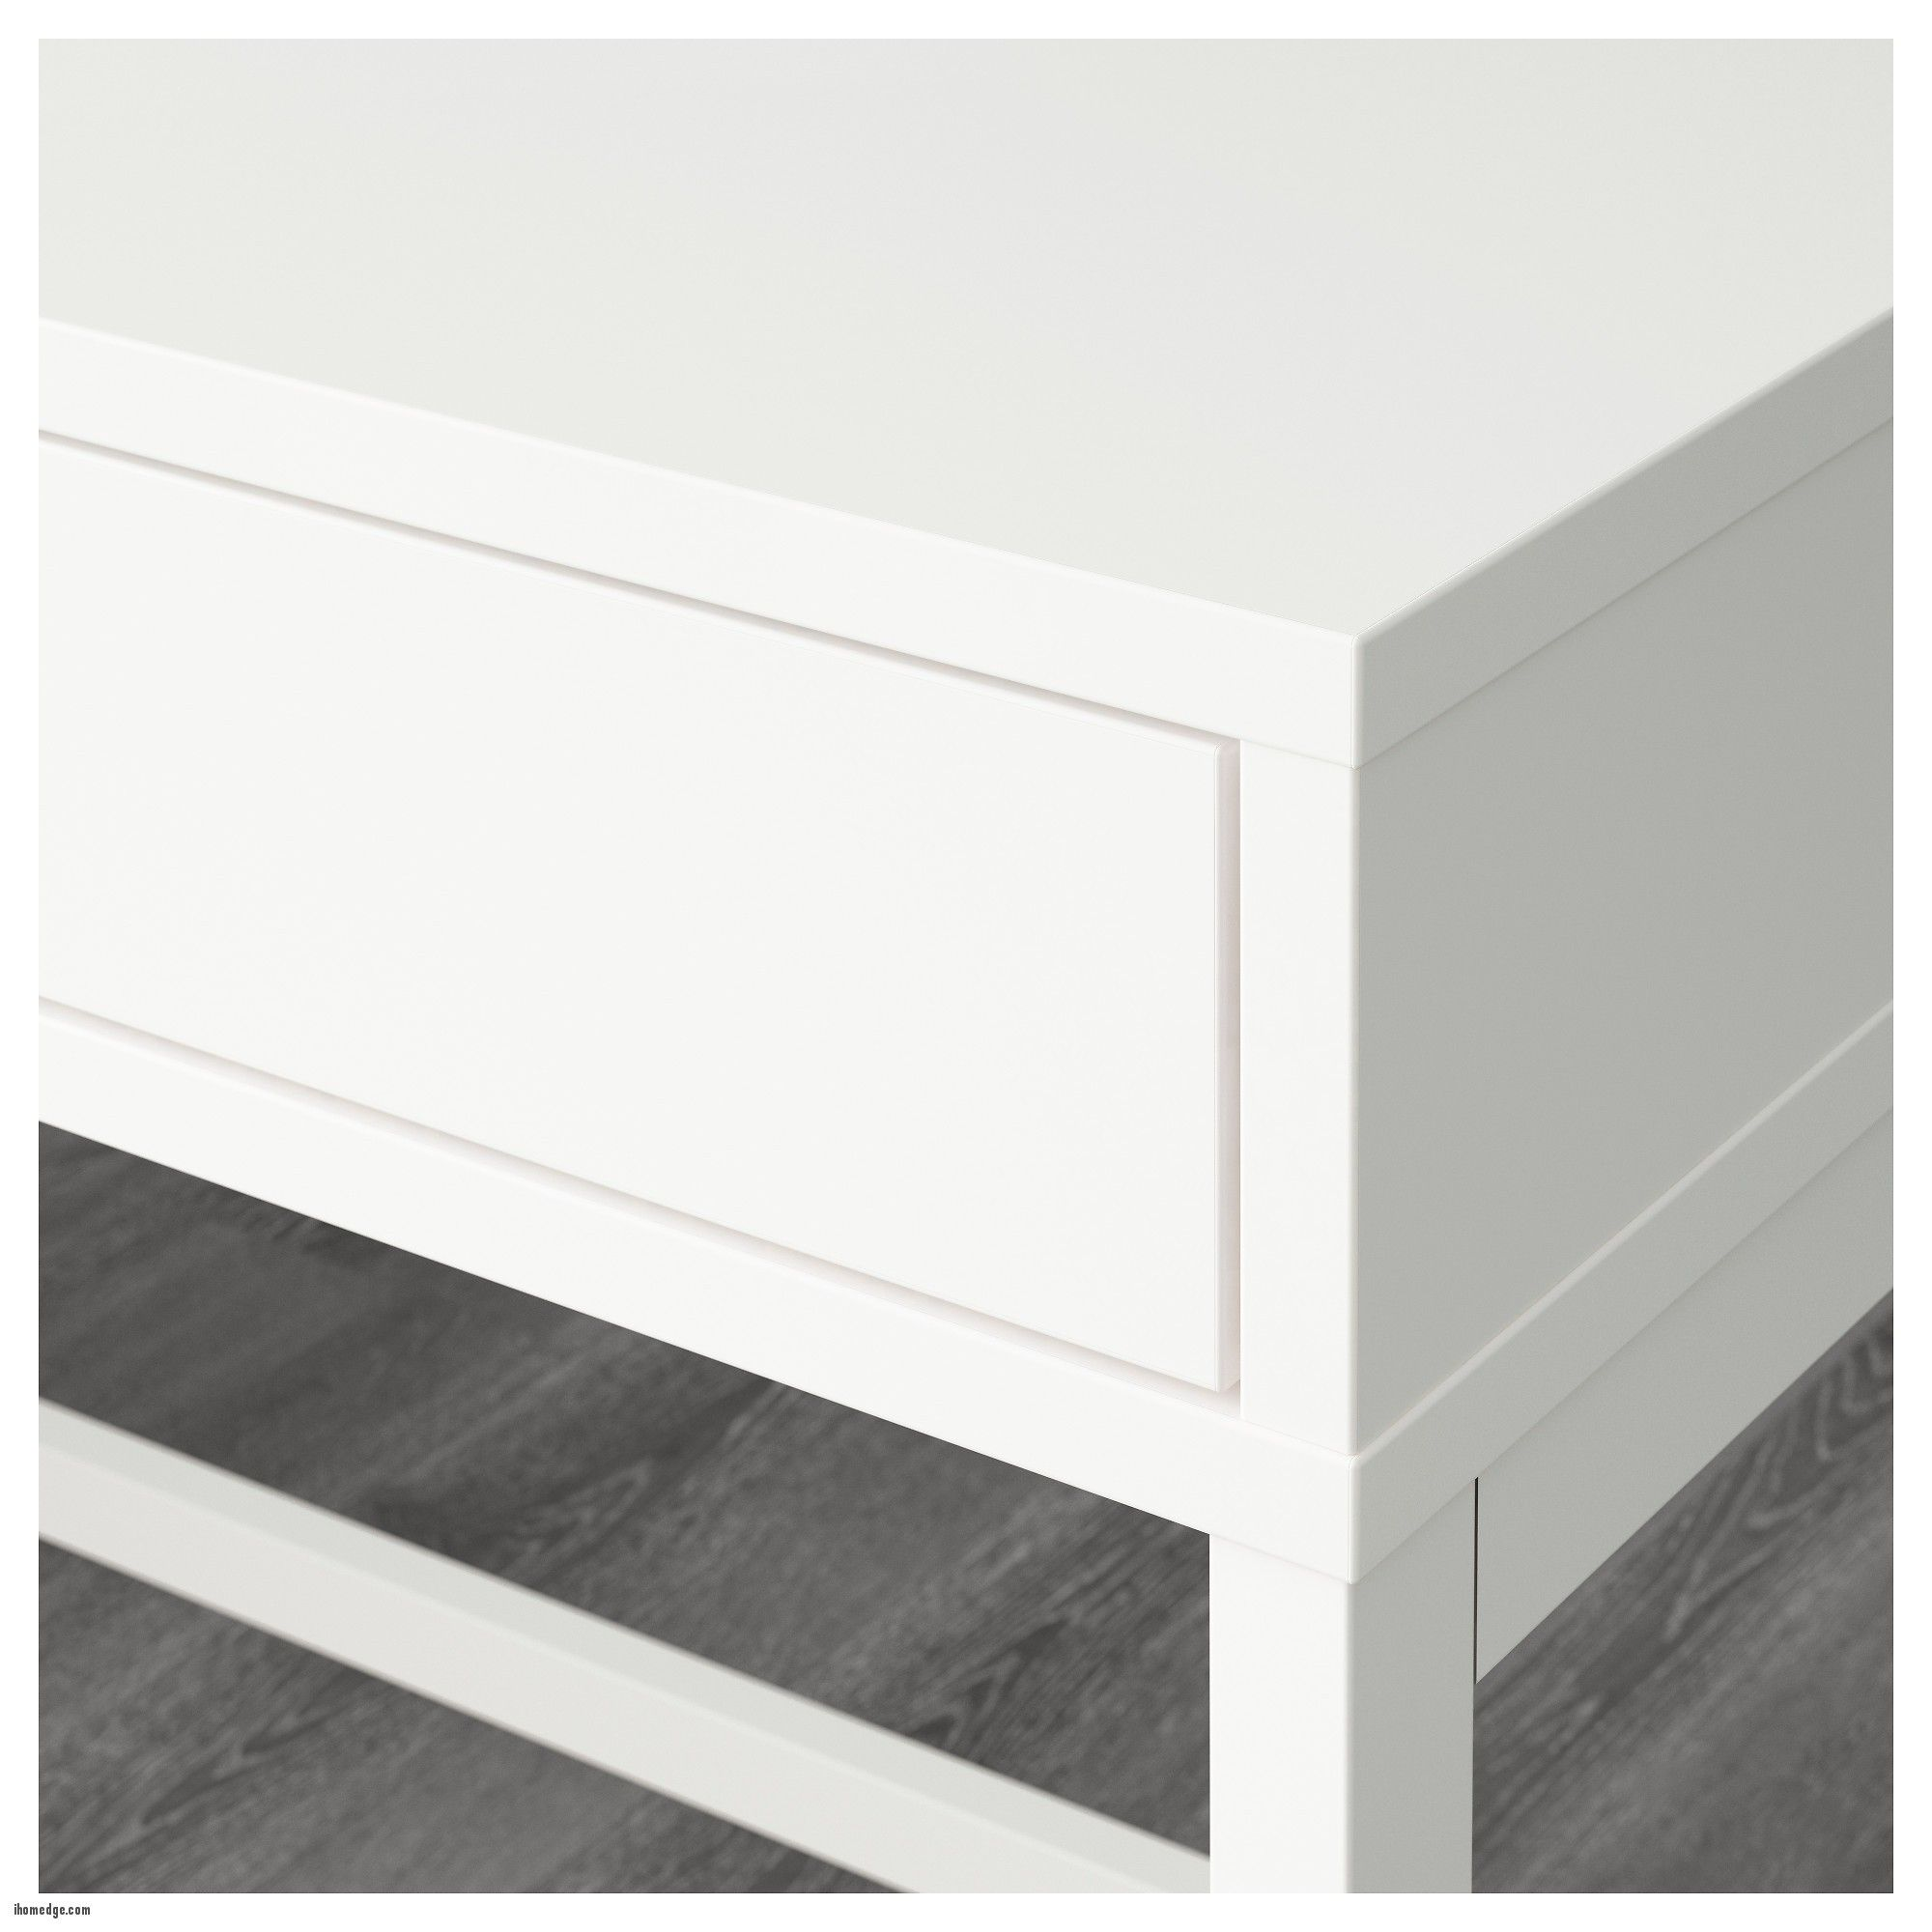 Best Fresh Desk Drawer , Ikea Alex Desk Drawer Stops